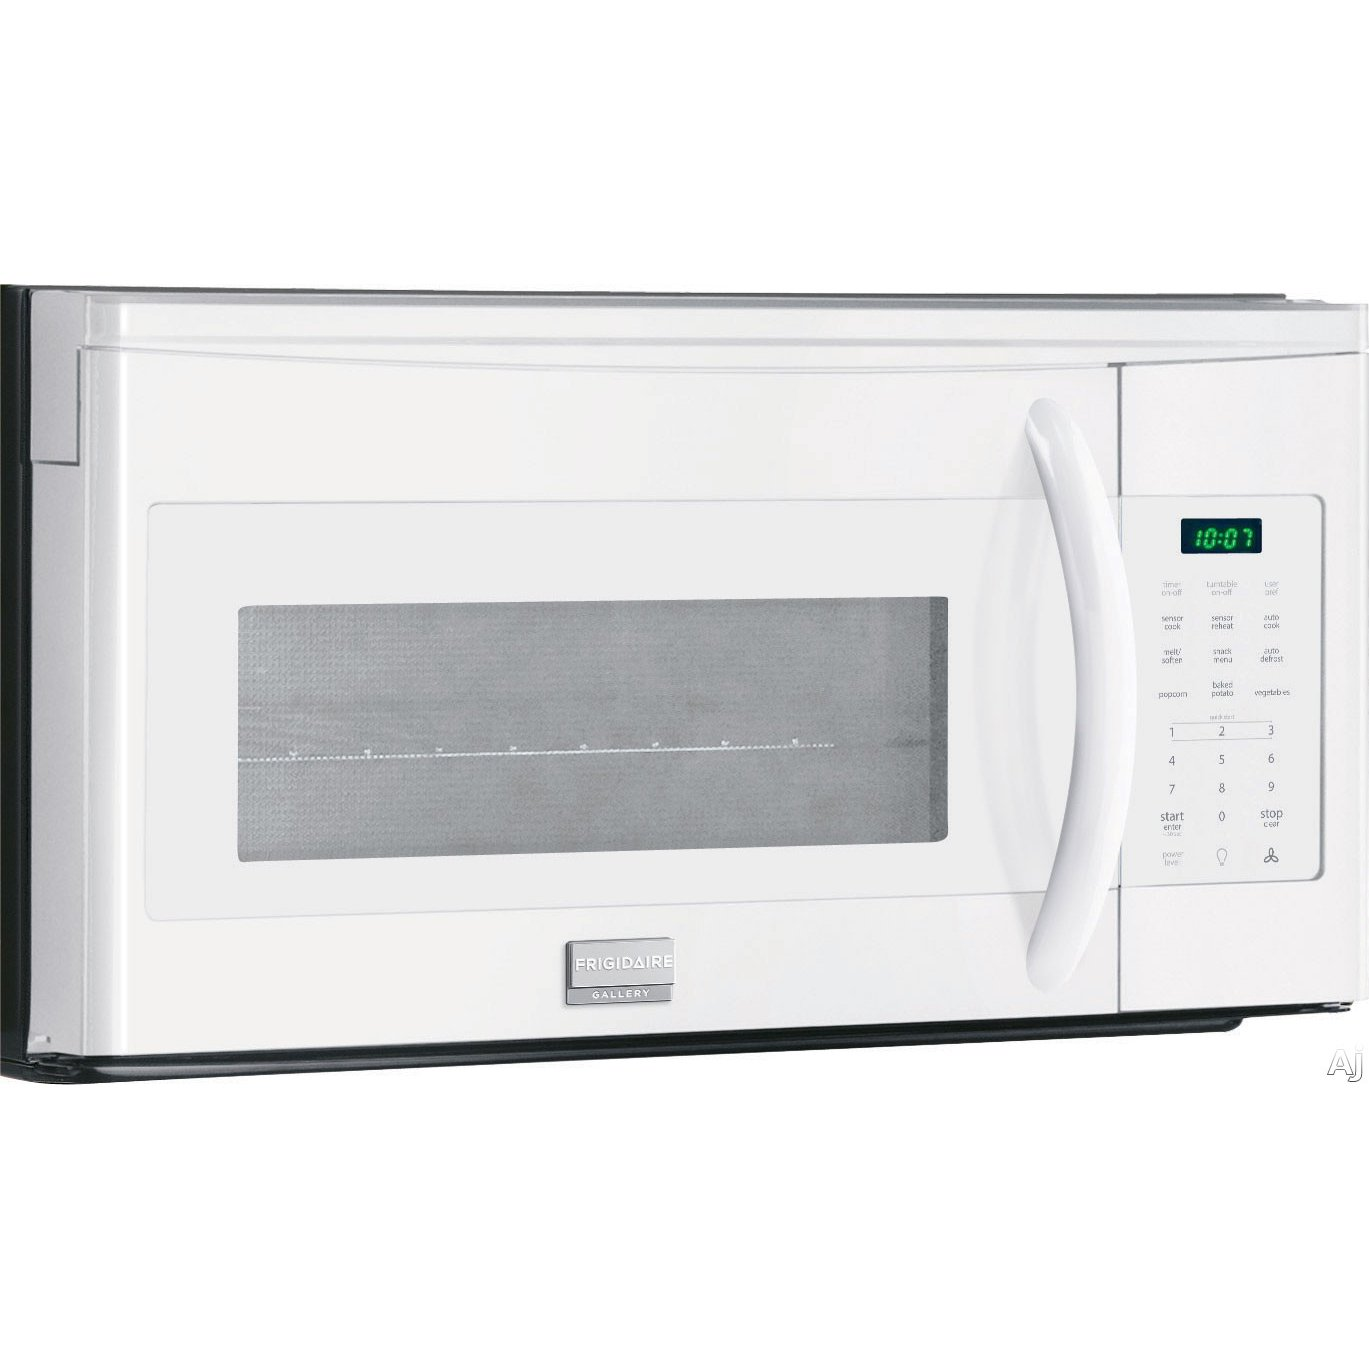 Galleon frigidaire fgmv175qw 1 7 cu ft over the range microwave oven - Red over the range microwave ...